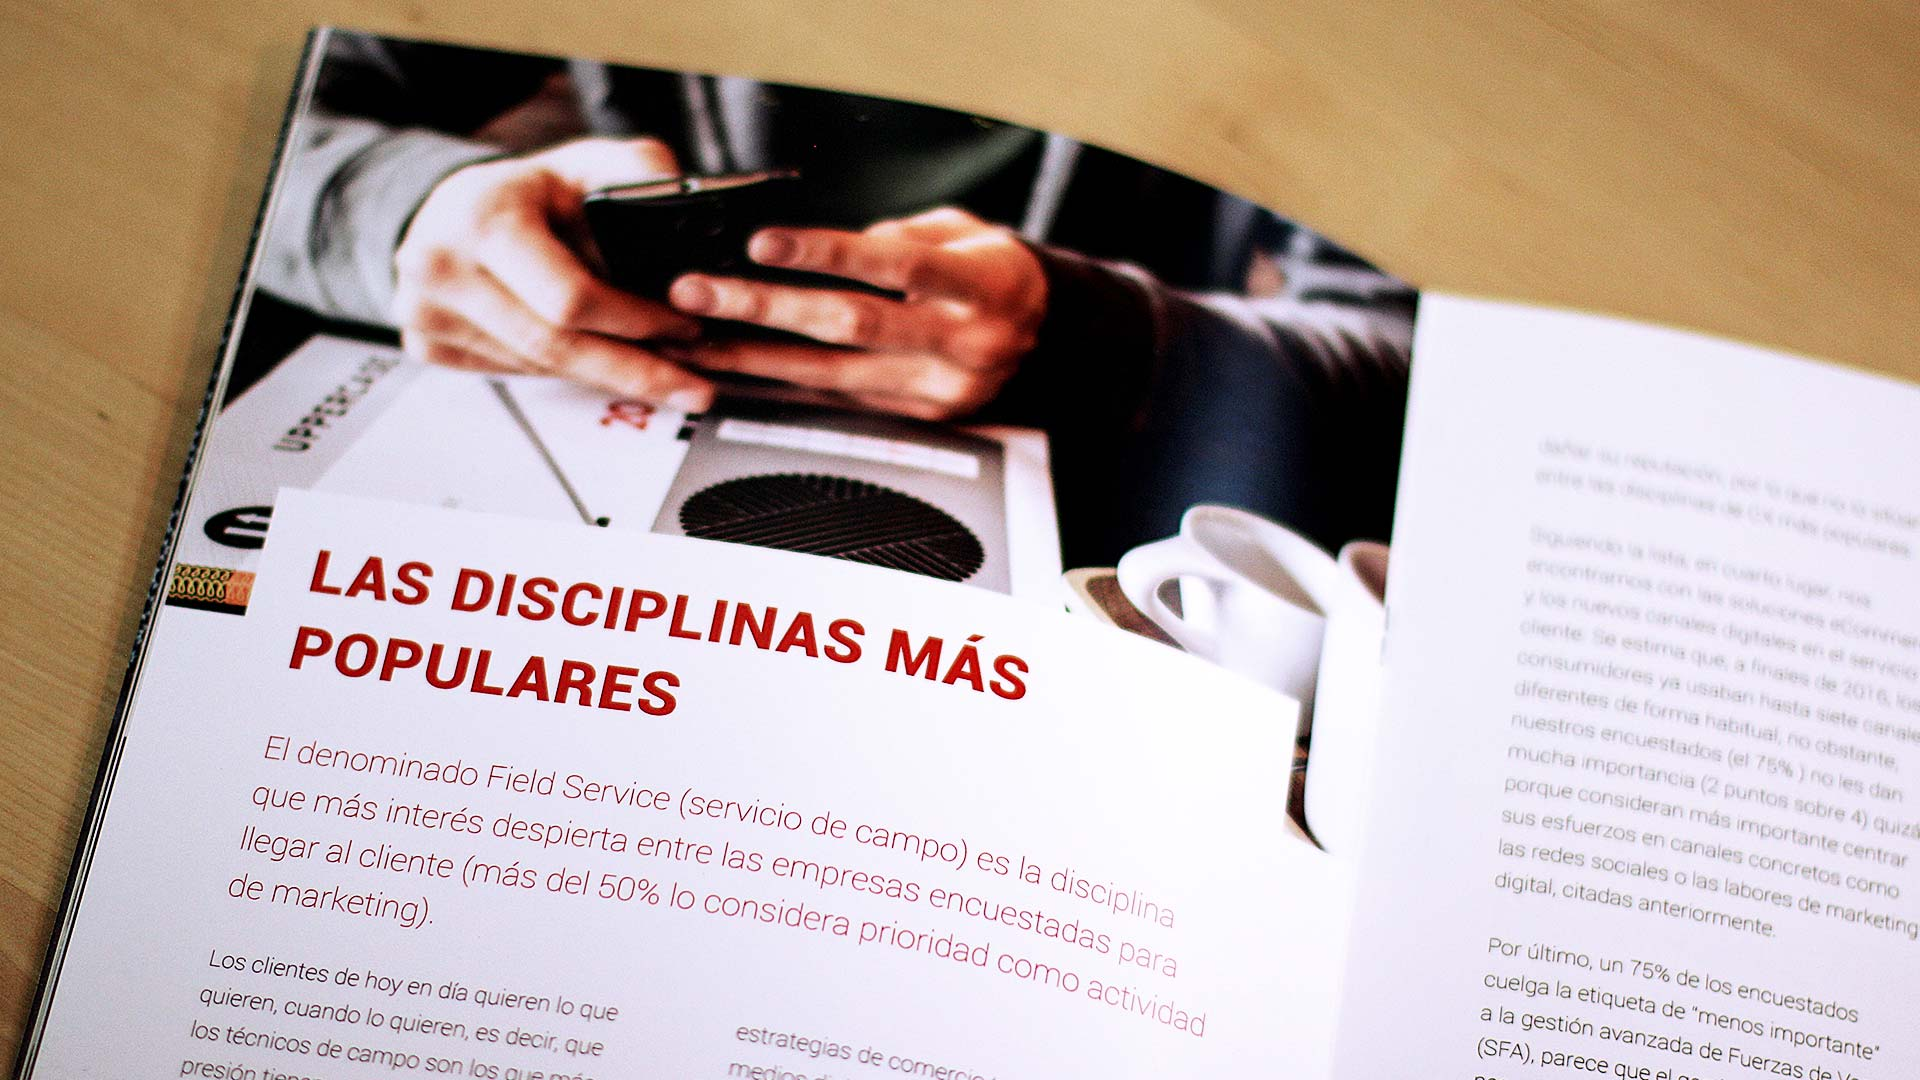 oracle-content-marketing-pilares-customer-experience-2017-21